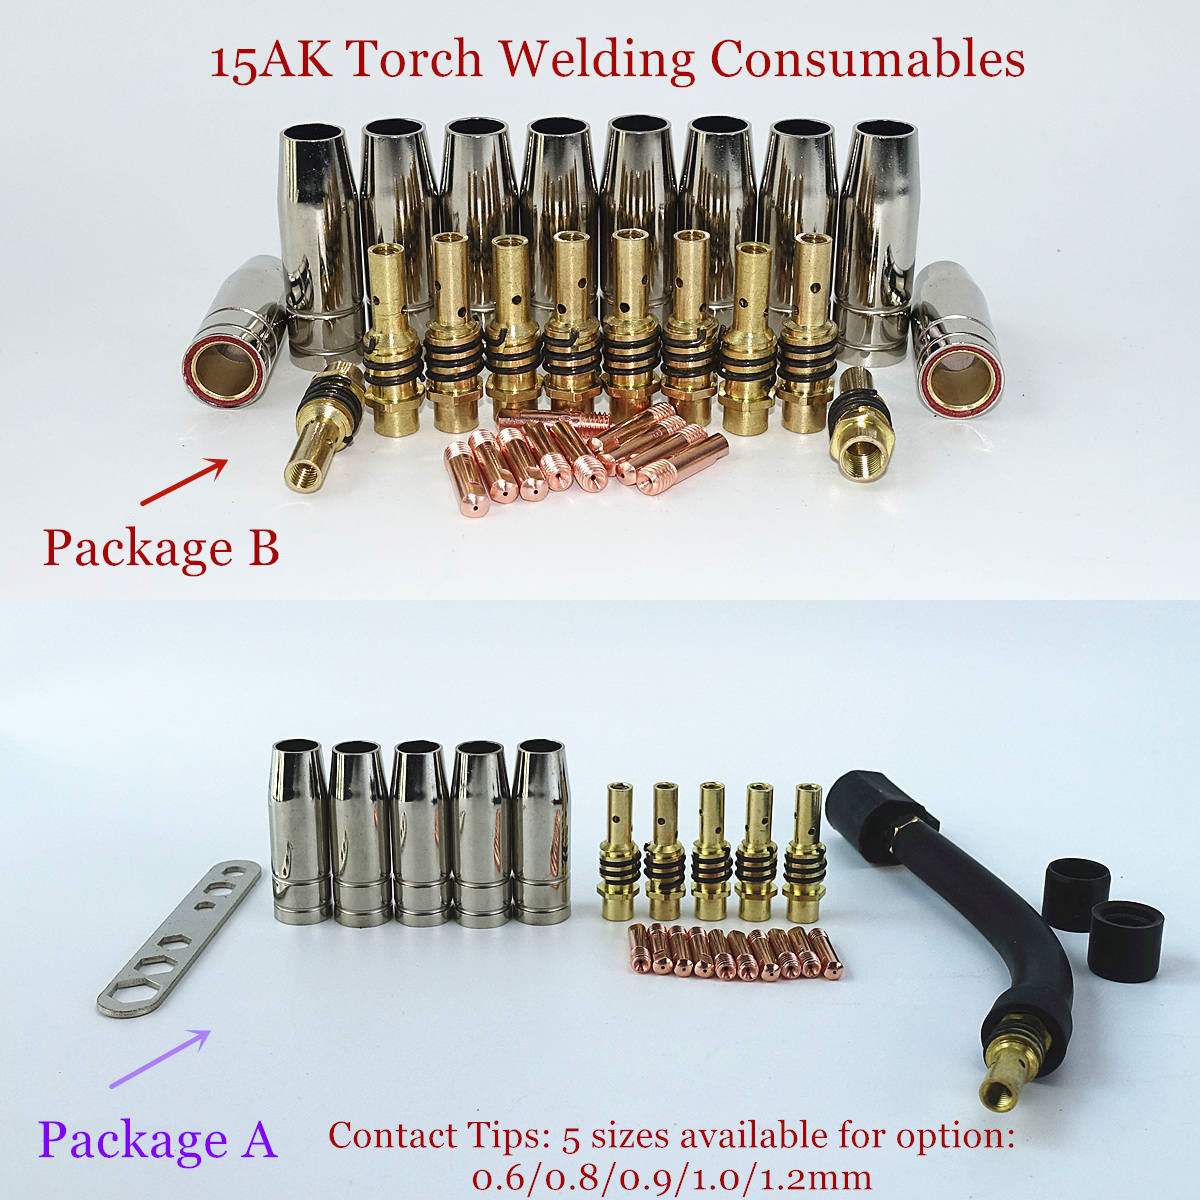 24pcs 15AK Nozzles Contact Tips Holders MIG//MAG Welder Welding Consumables Kit